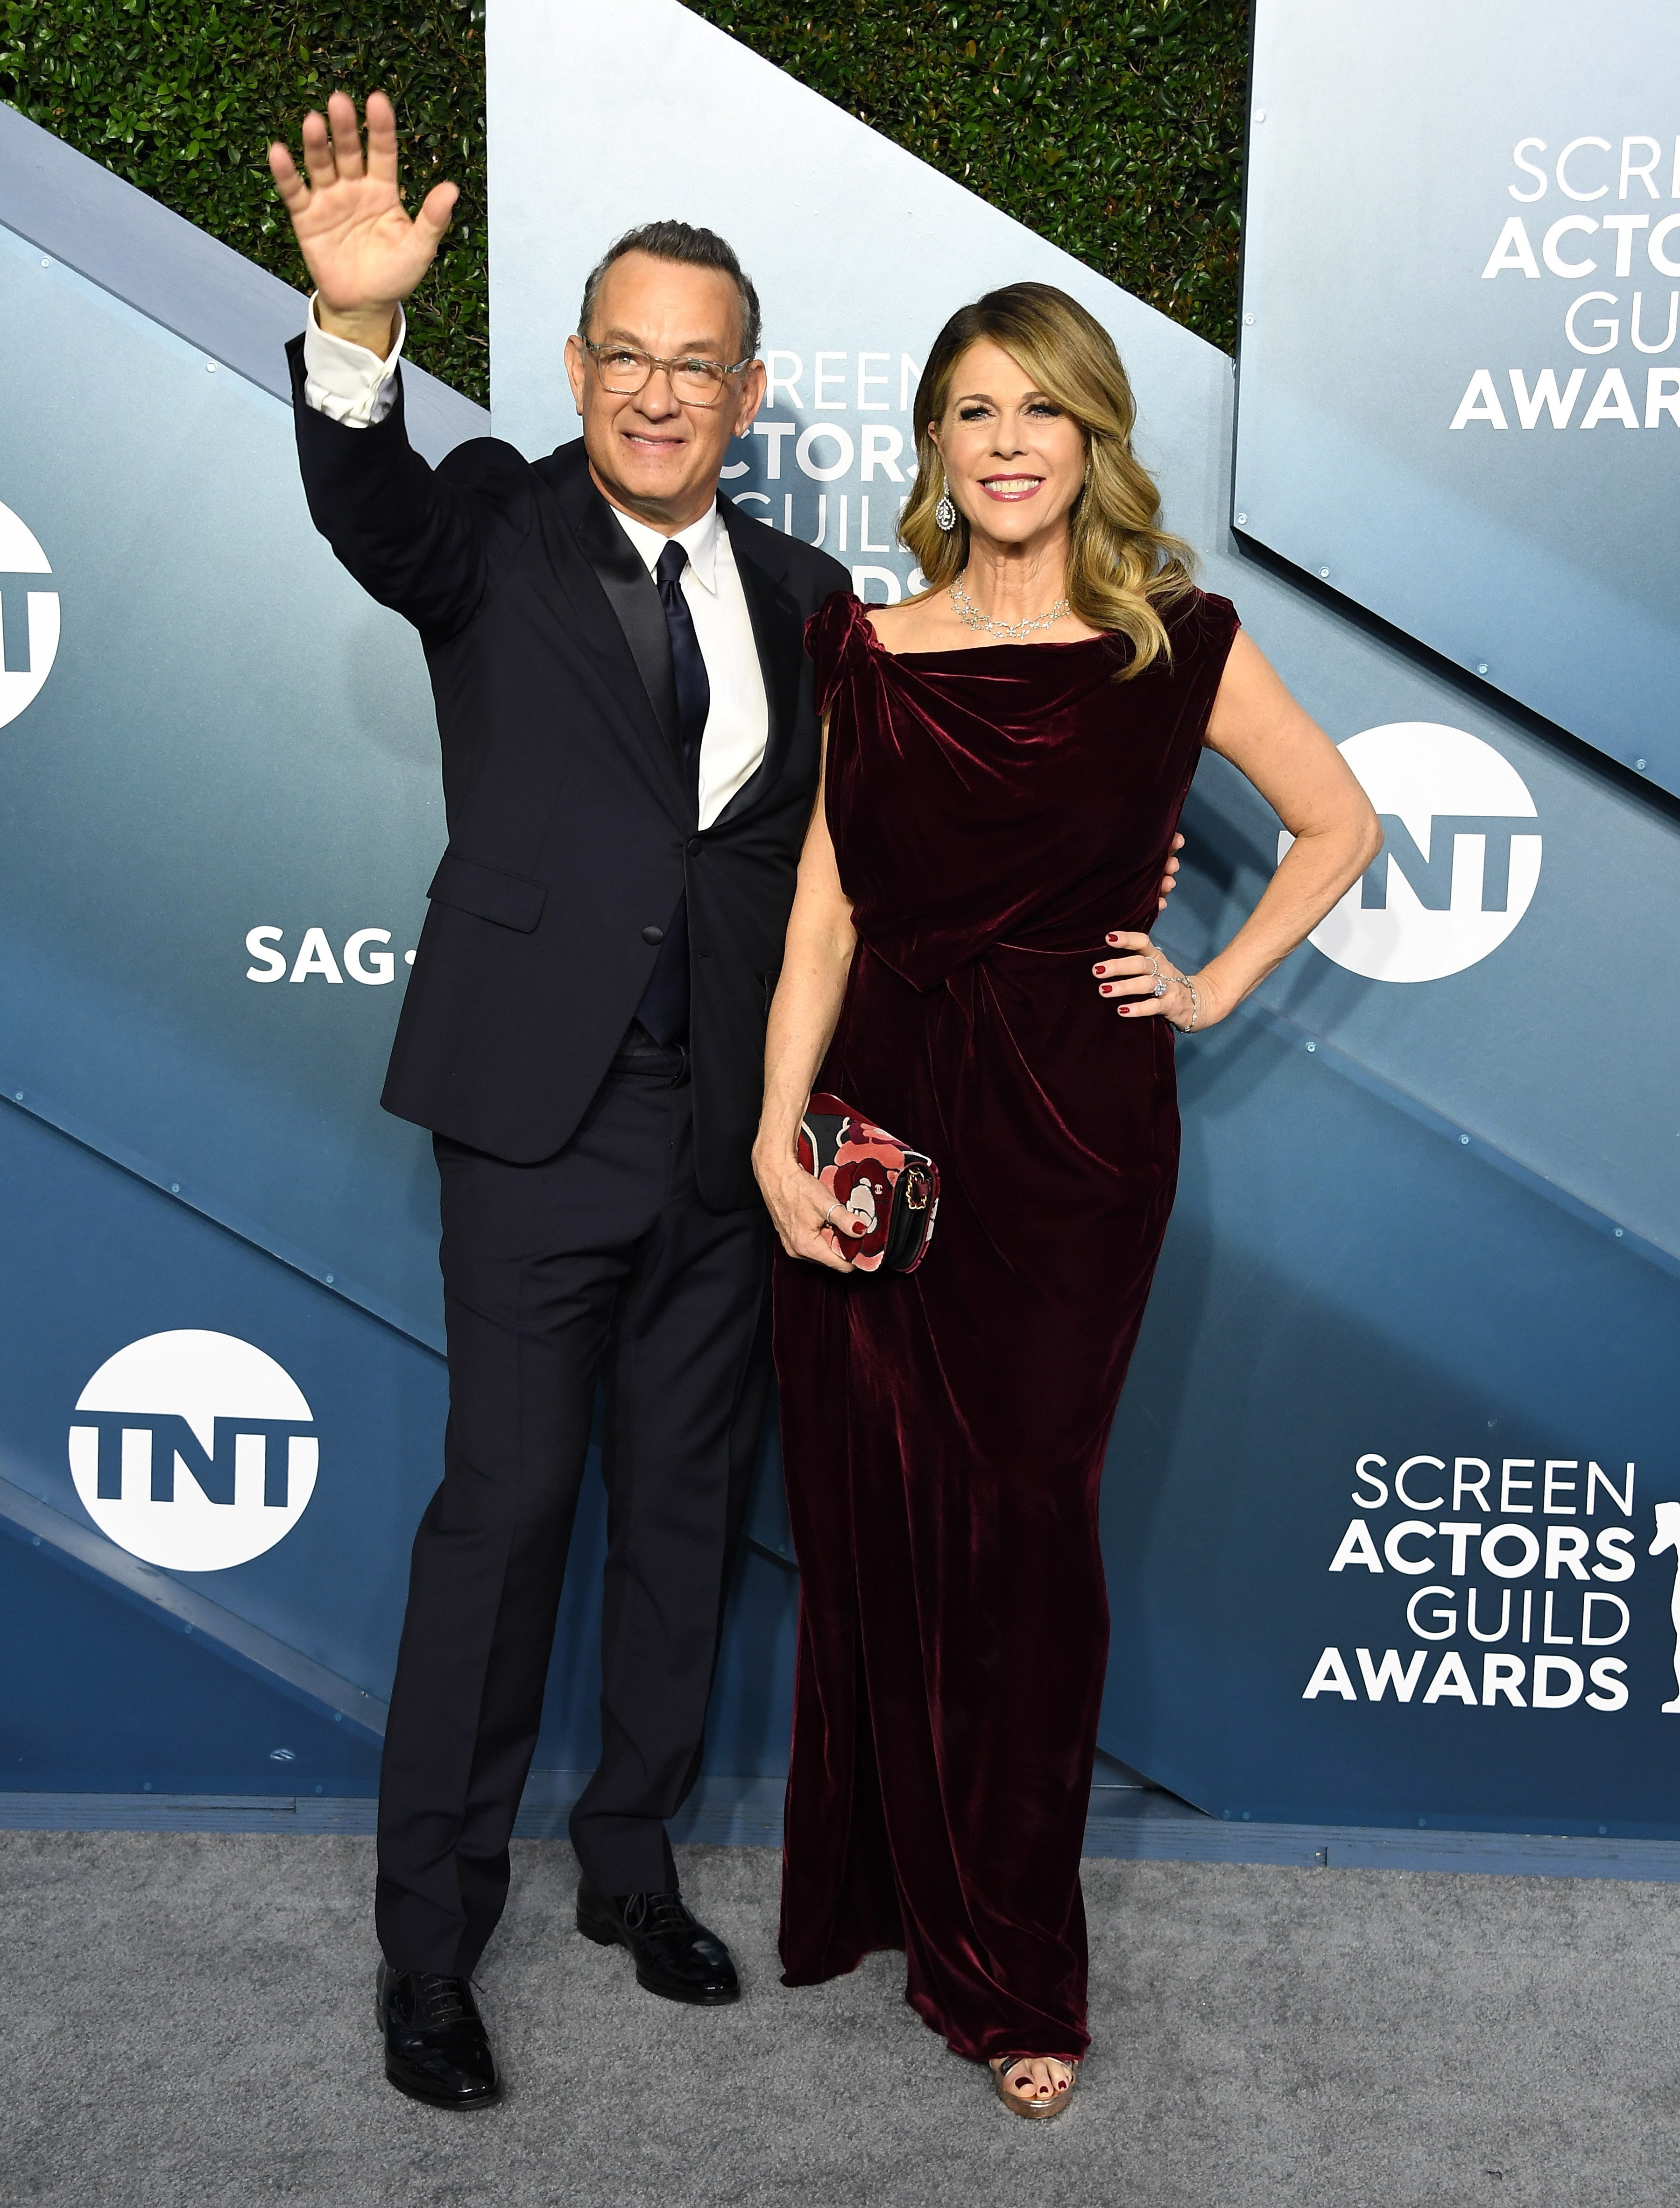 Rita Wilson and Tom Hanks on January 19, 2020 in Los Angeles, California | Source: Getty Images